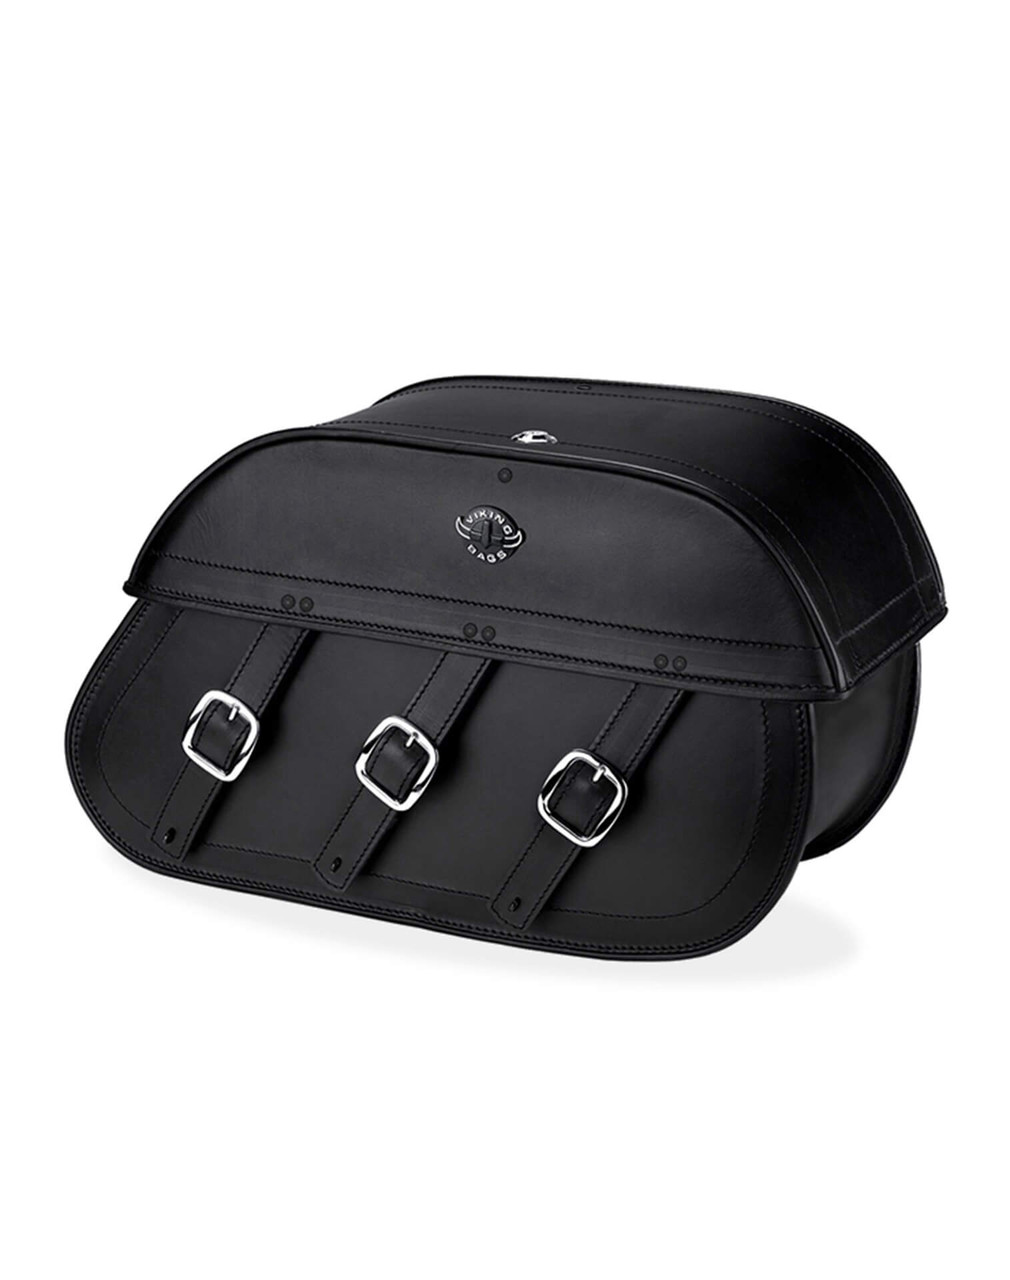 Indian Chief Standard Trianon Motorcycle Saddlebags Main Bag View